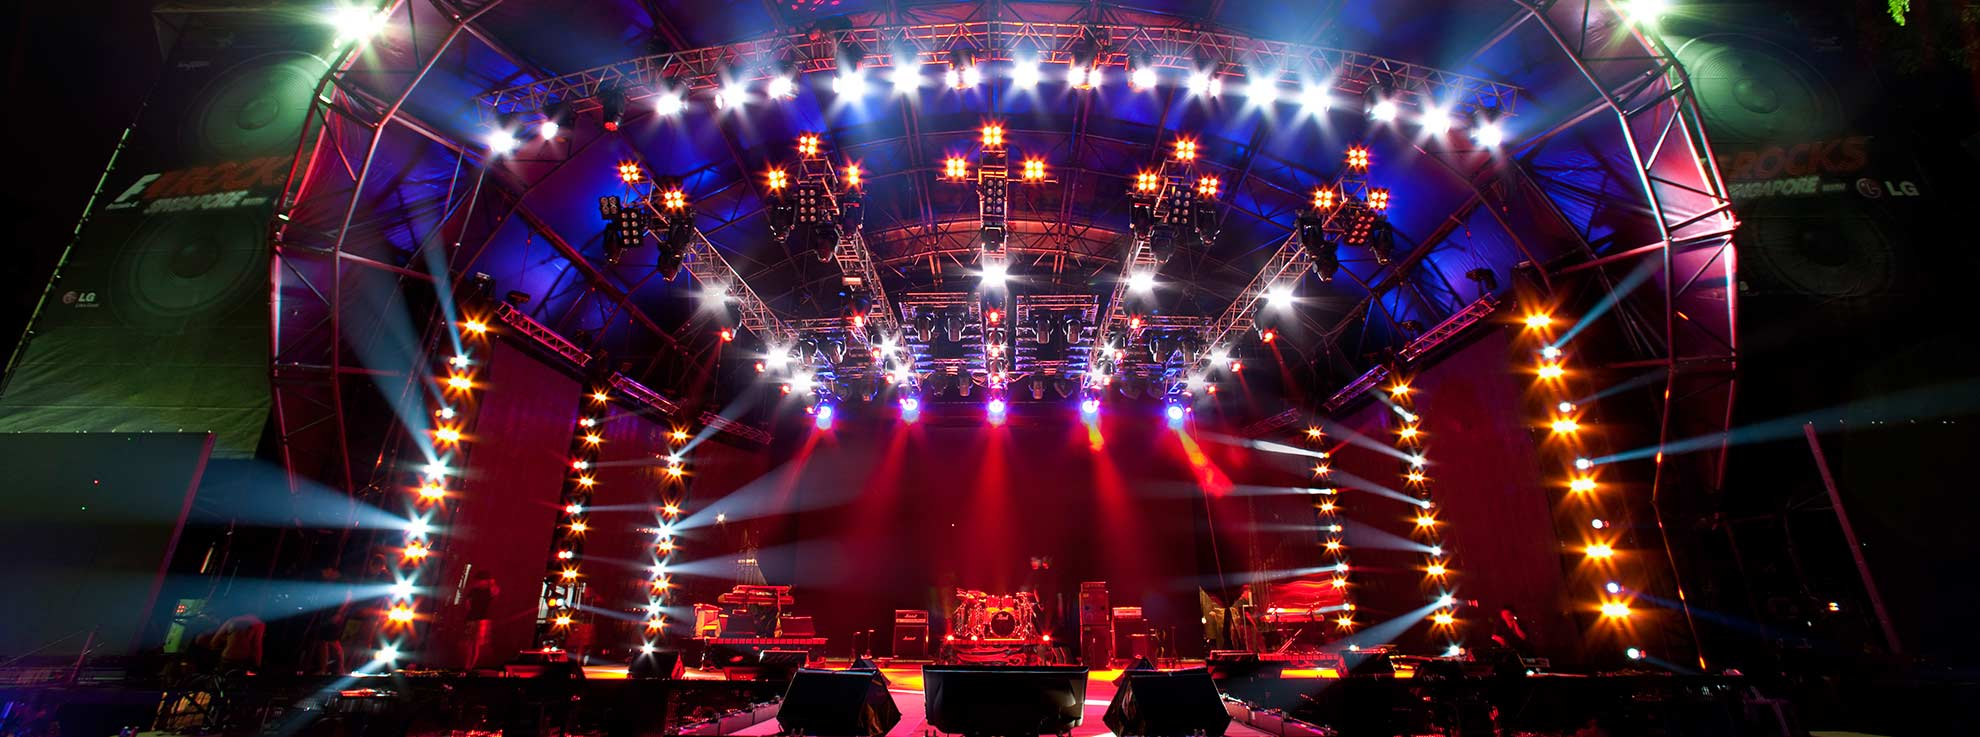 Financing for Theatrical & Entertainment Lighting